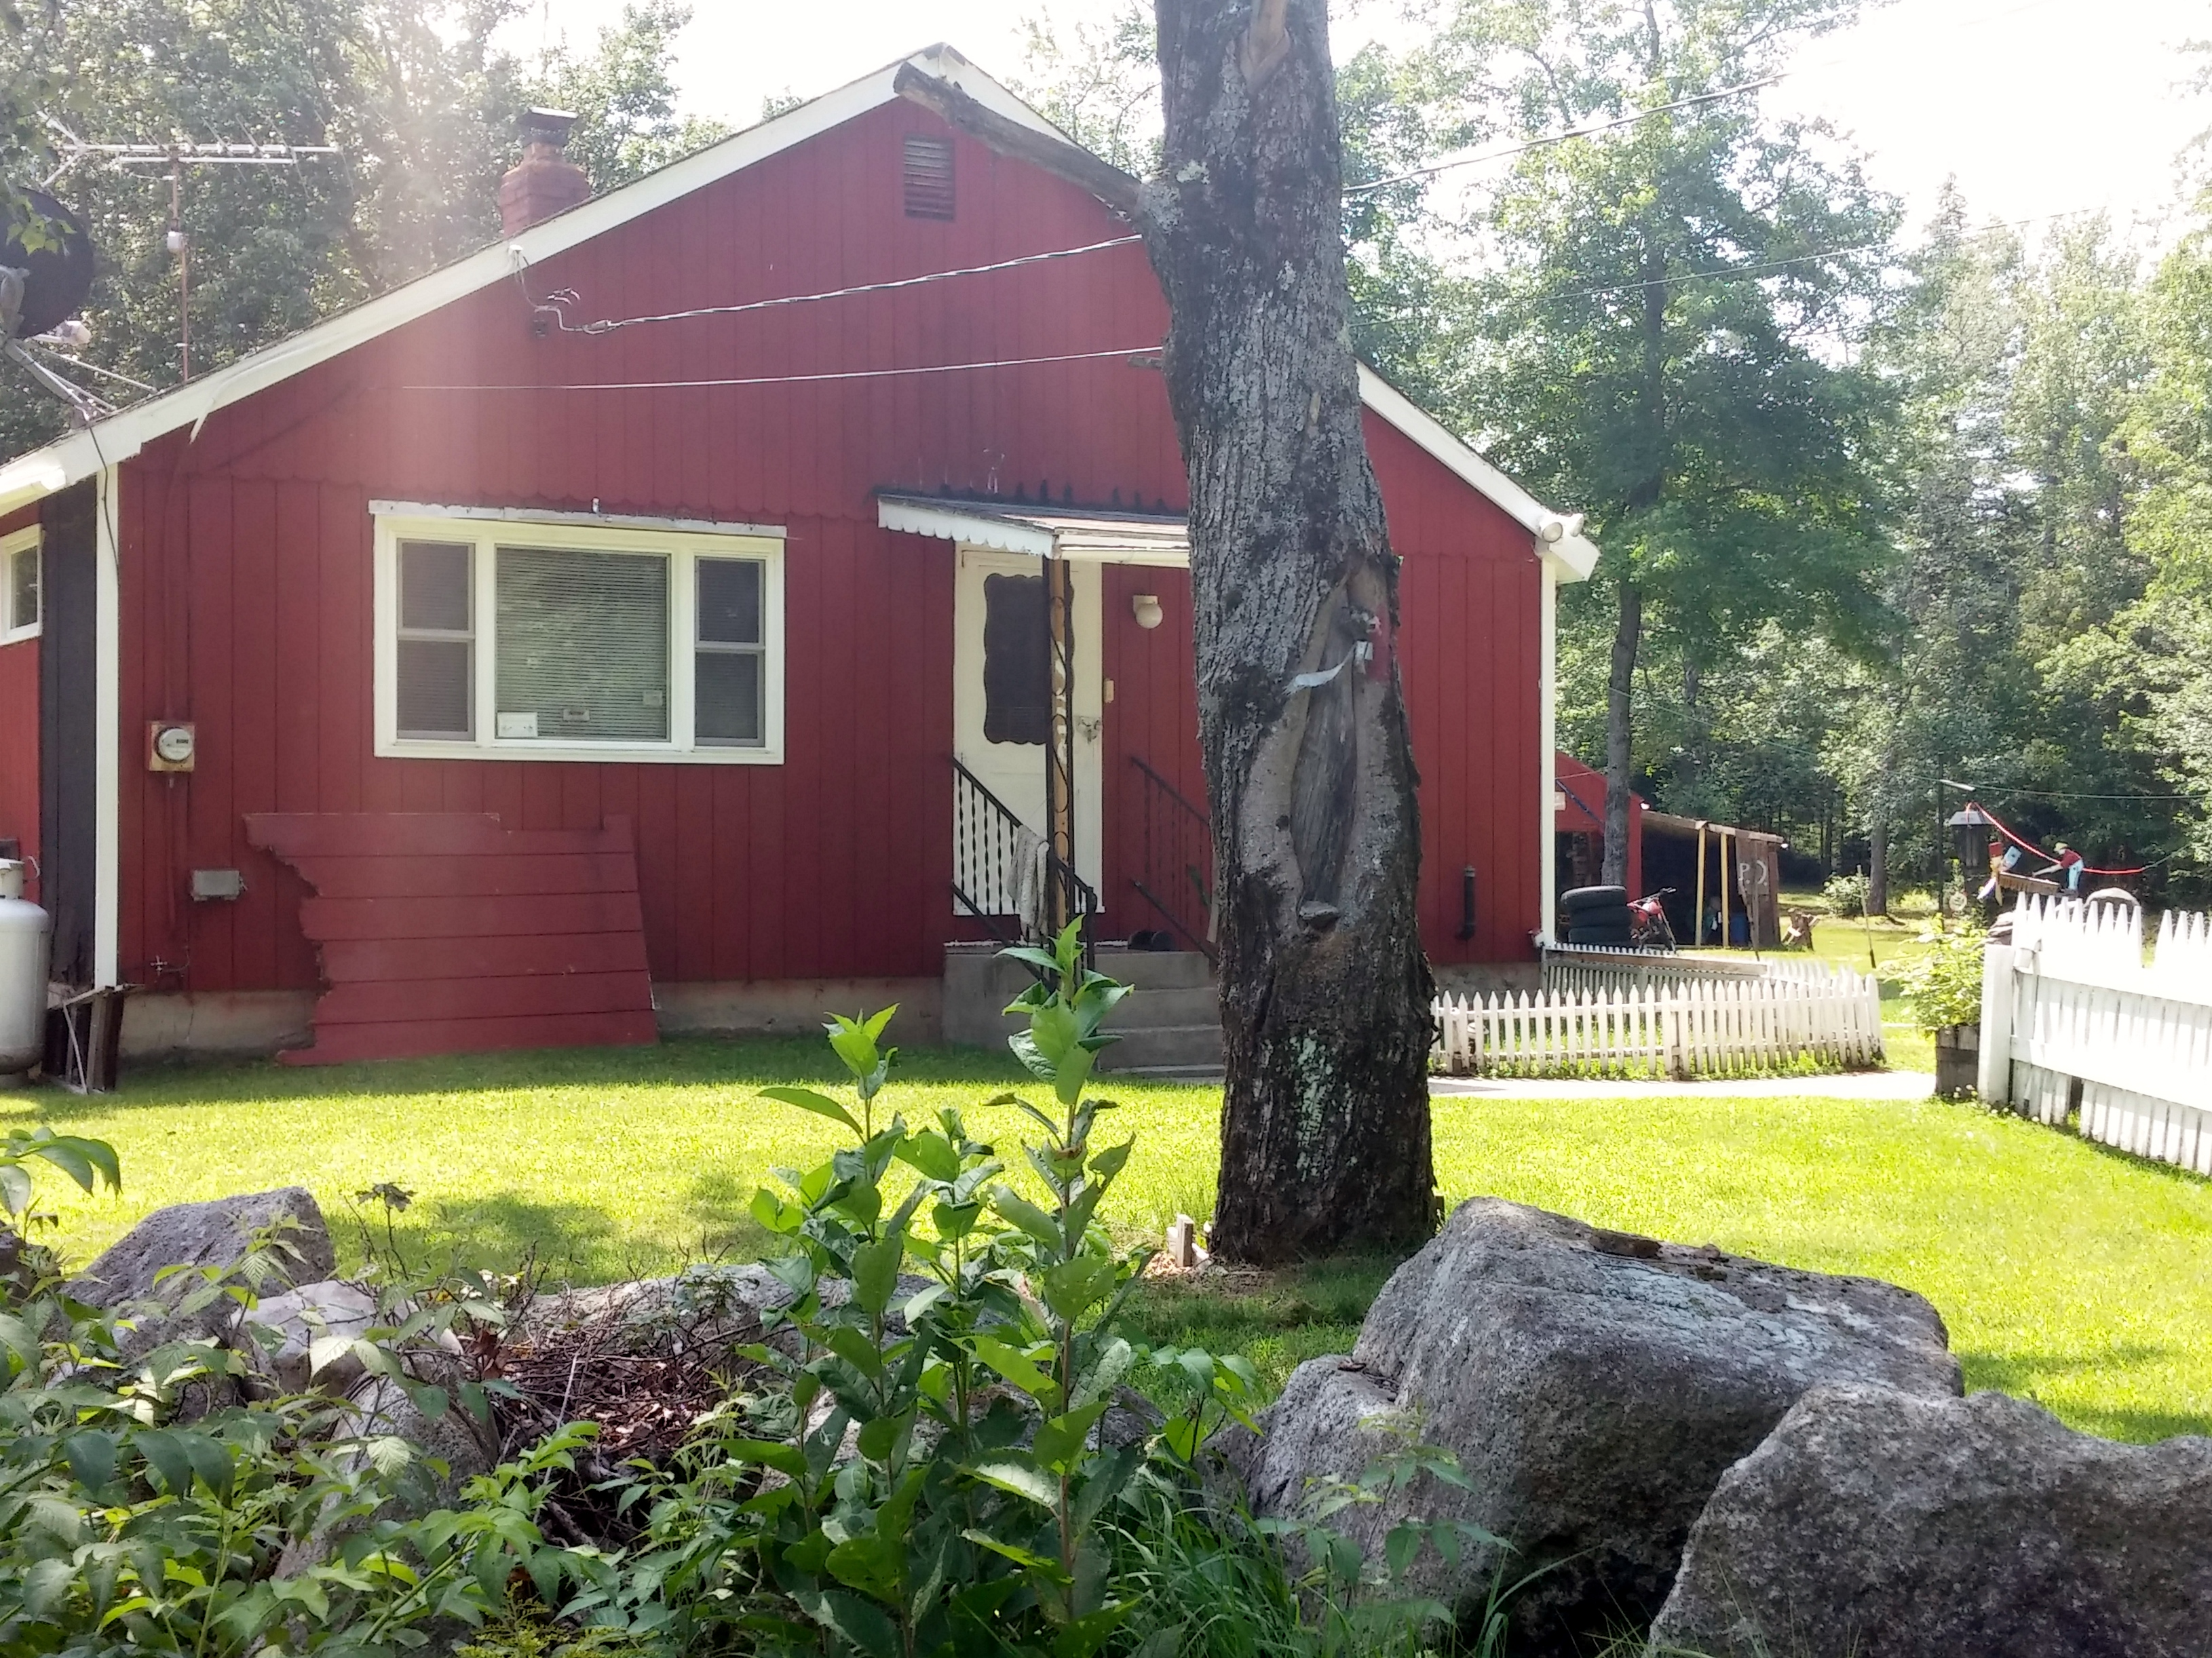 450 MOUNTAIN ROAD, Lempster, New Hampshire 03605